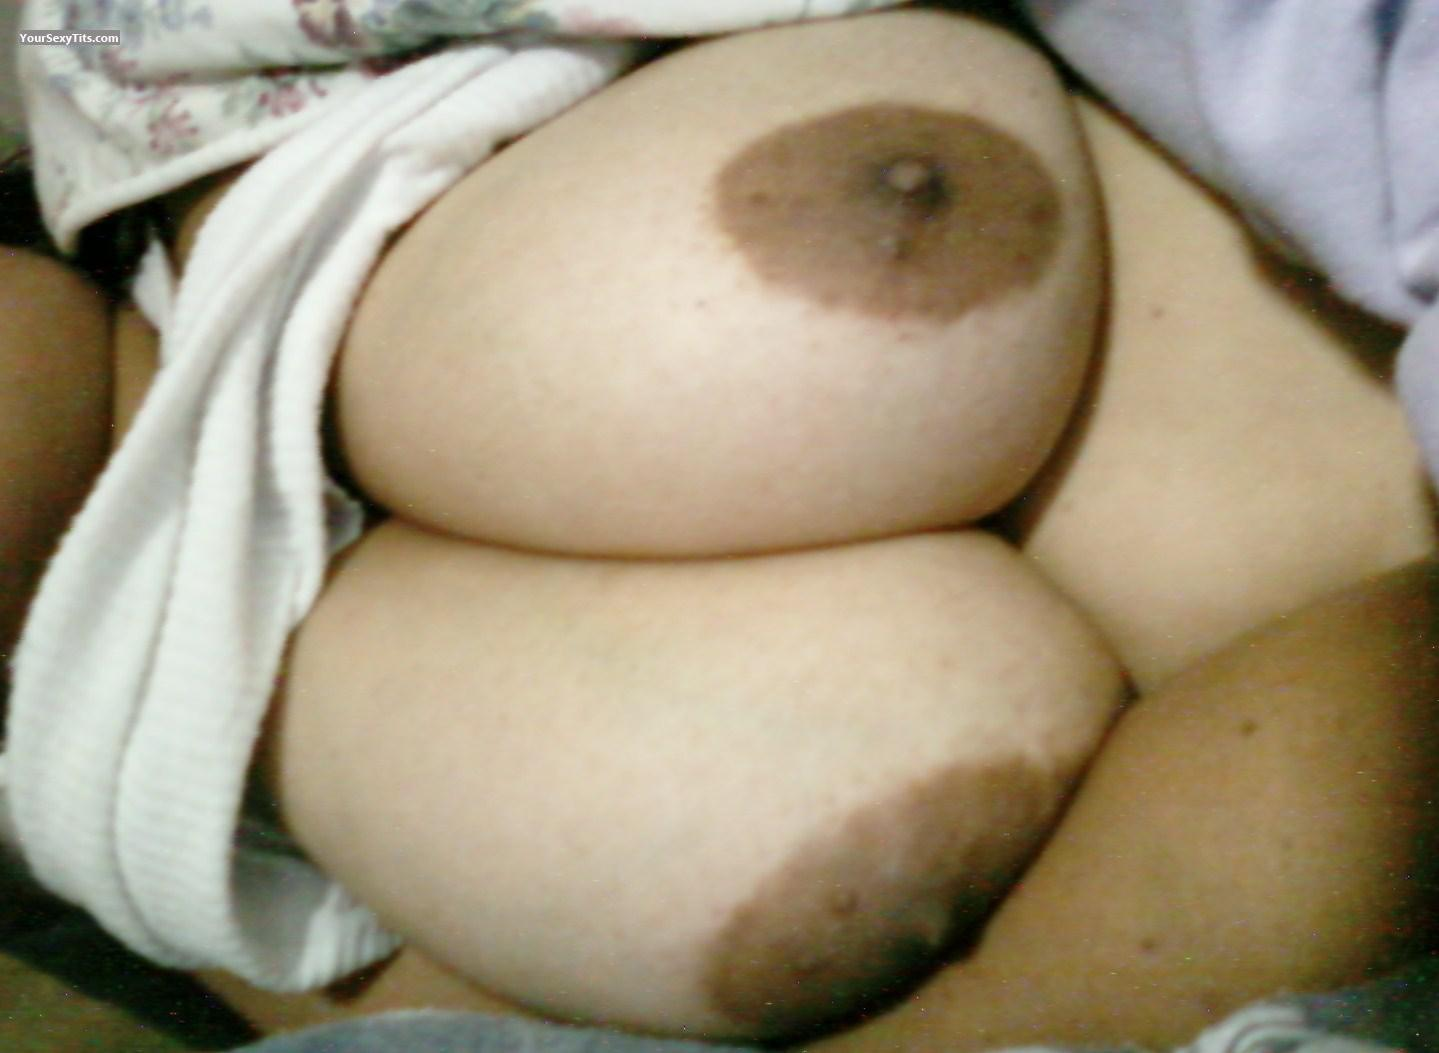 Tit Flash: Very Big Tits - Brown Beauty from United States